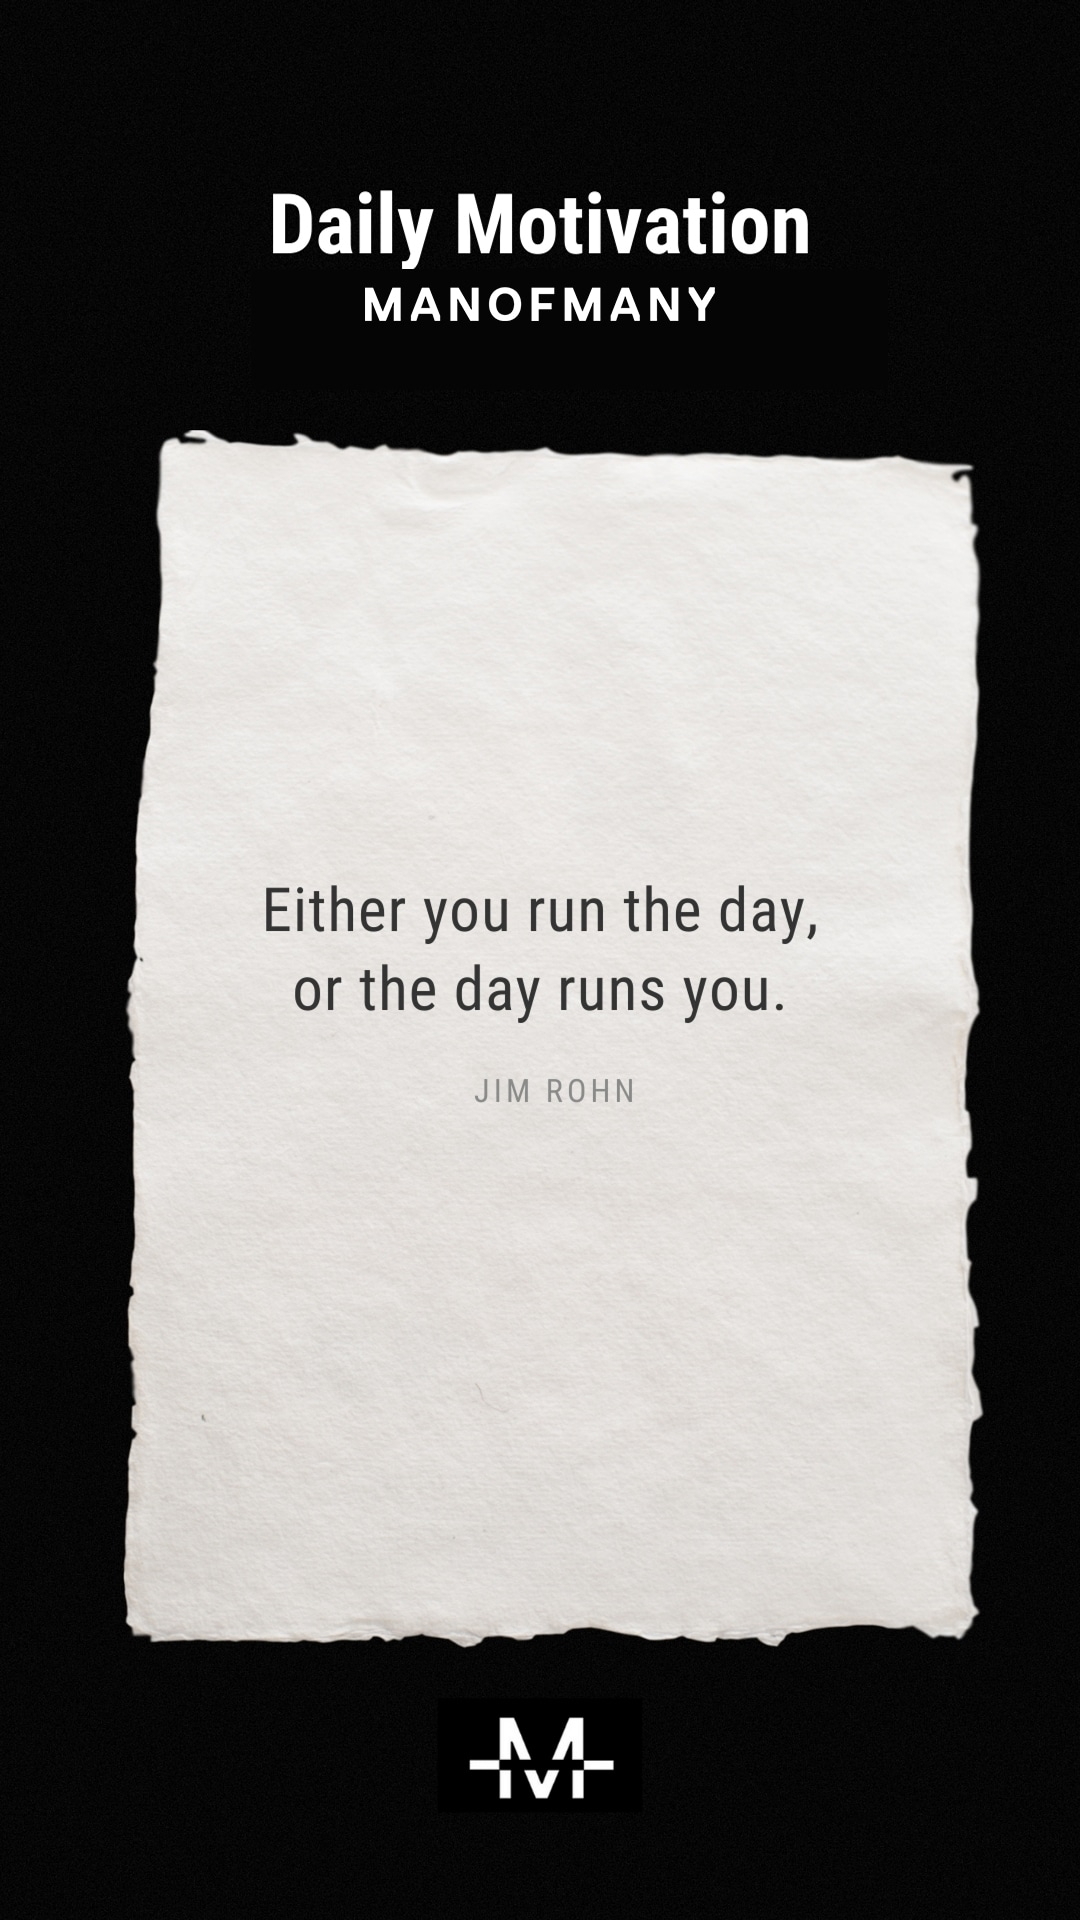 Either you run the day, or the day runs you. –Jim Rohn quote